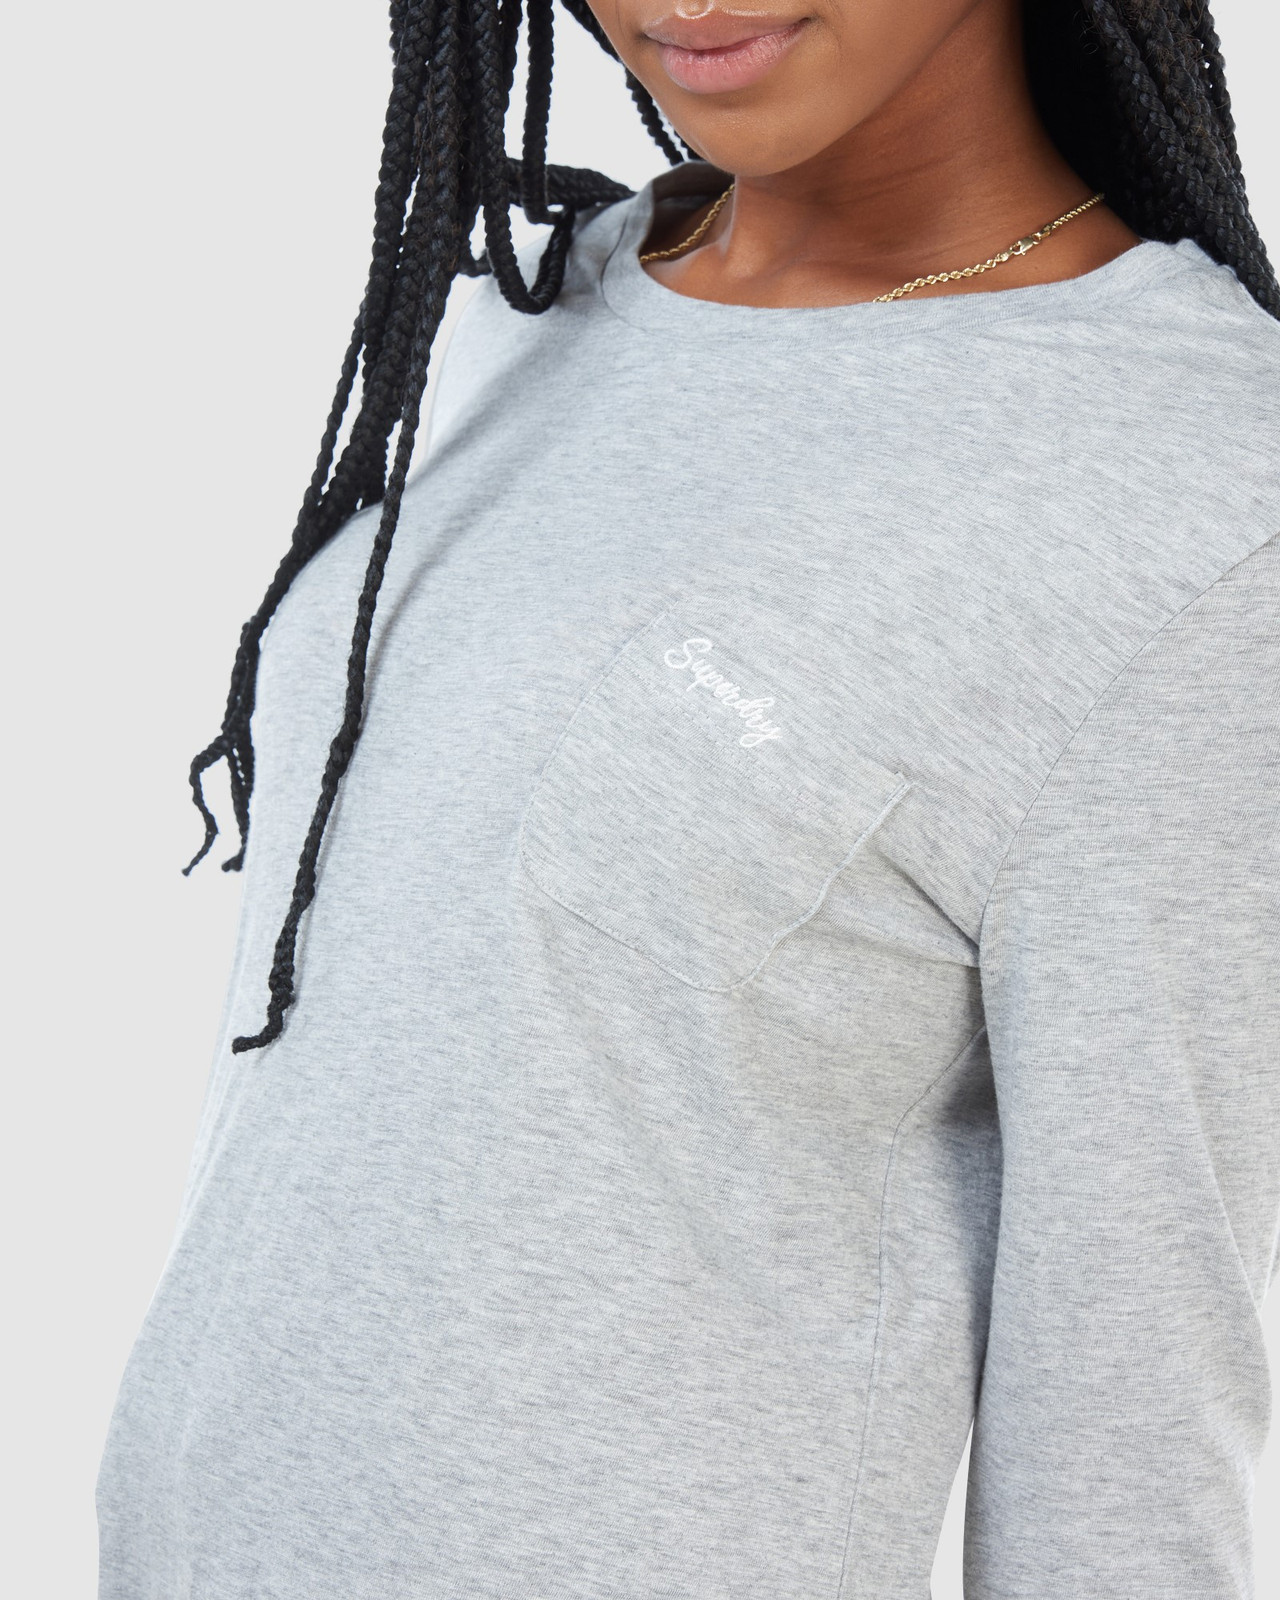 Superdry Womens SCRIPTED L/S CREW TOP Grey Long Sleeve Top 6